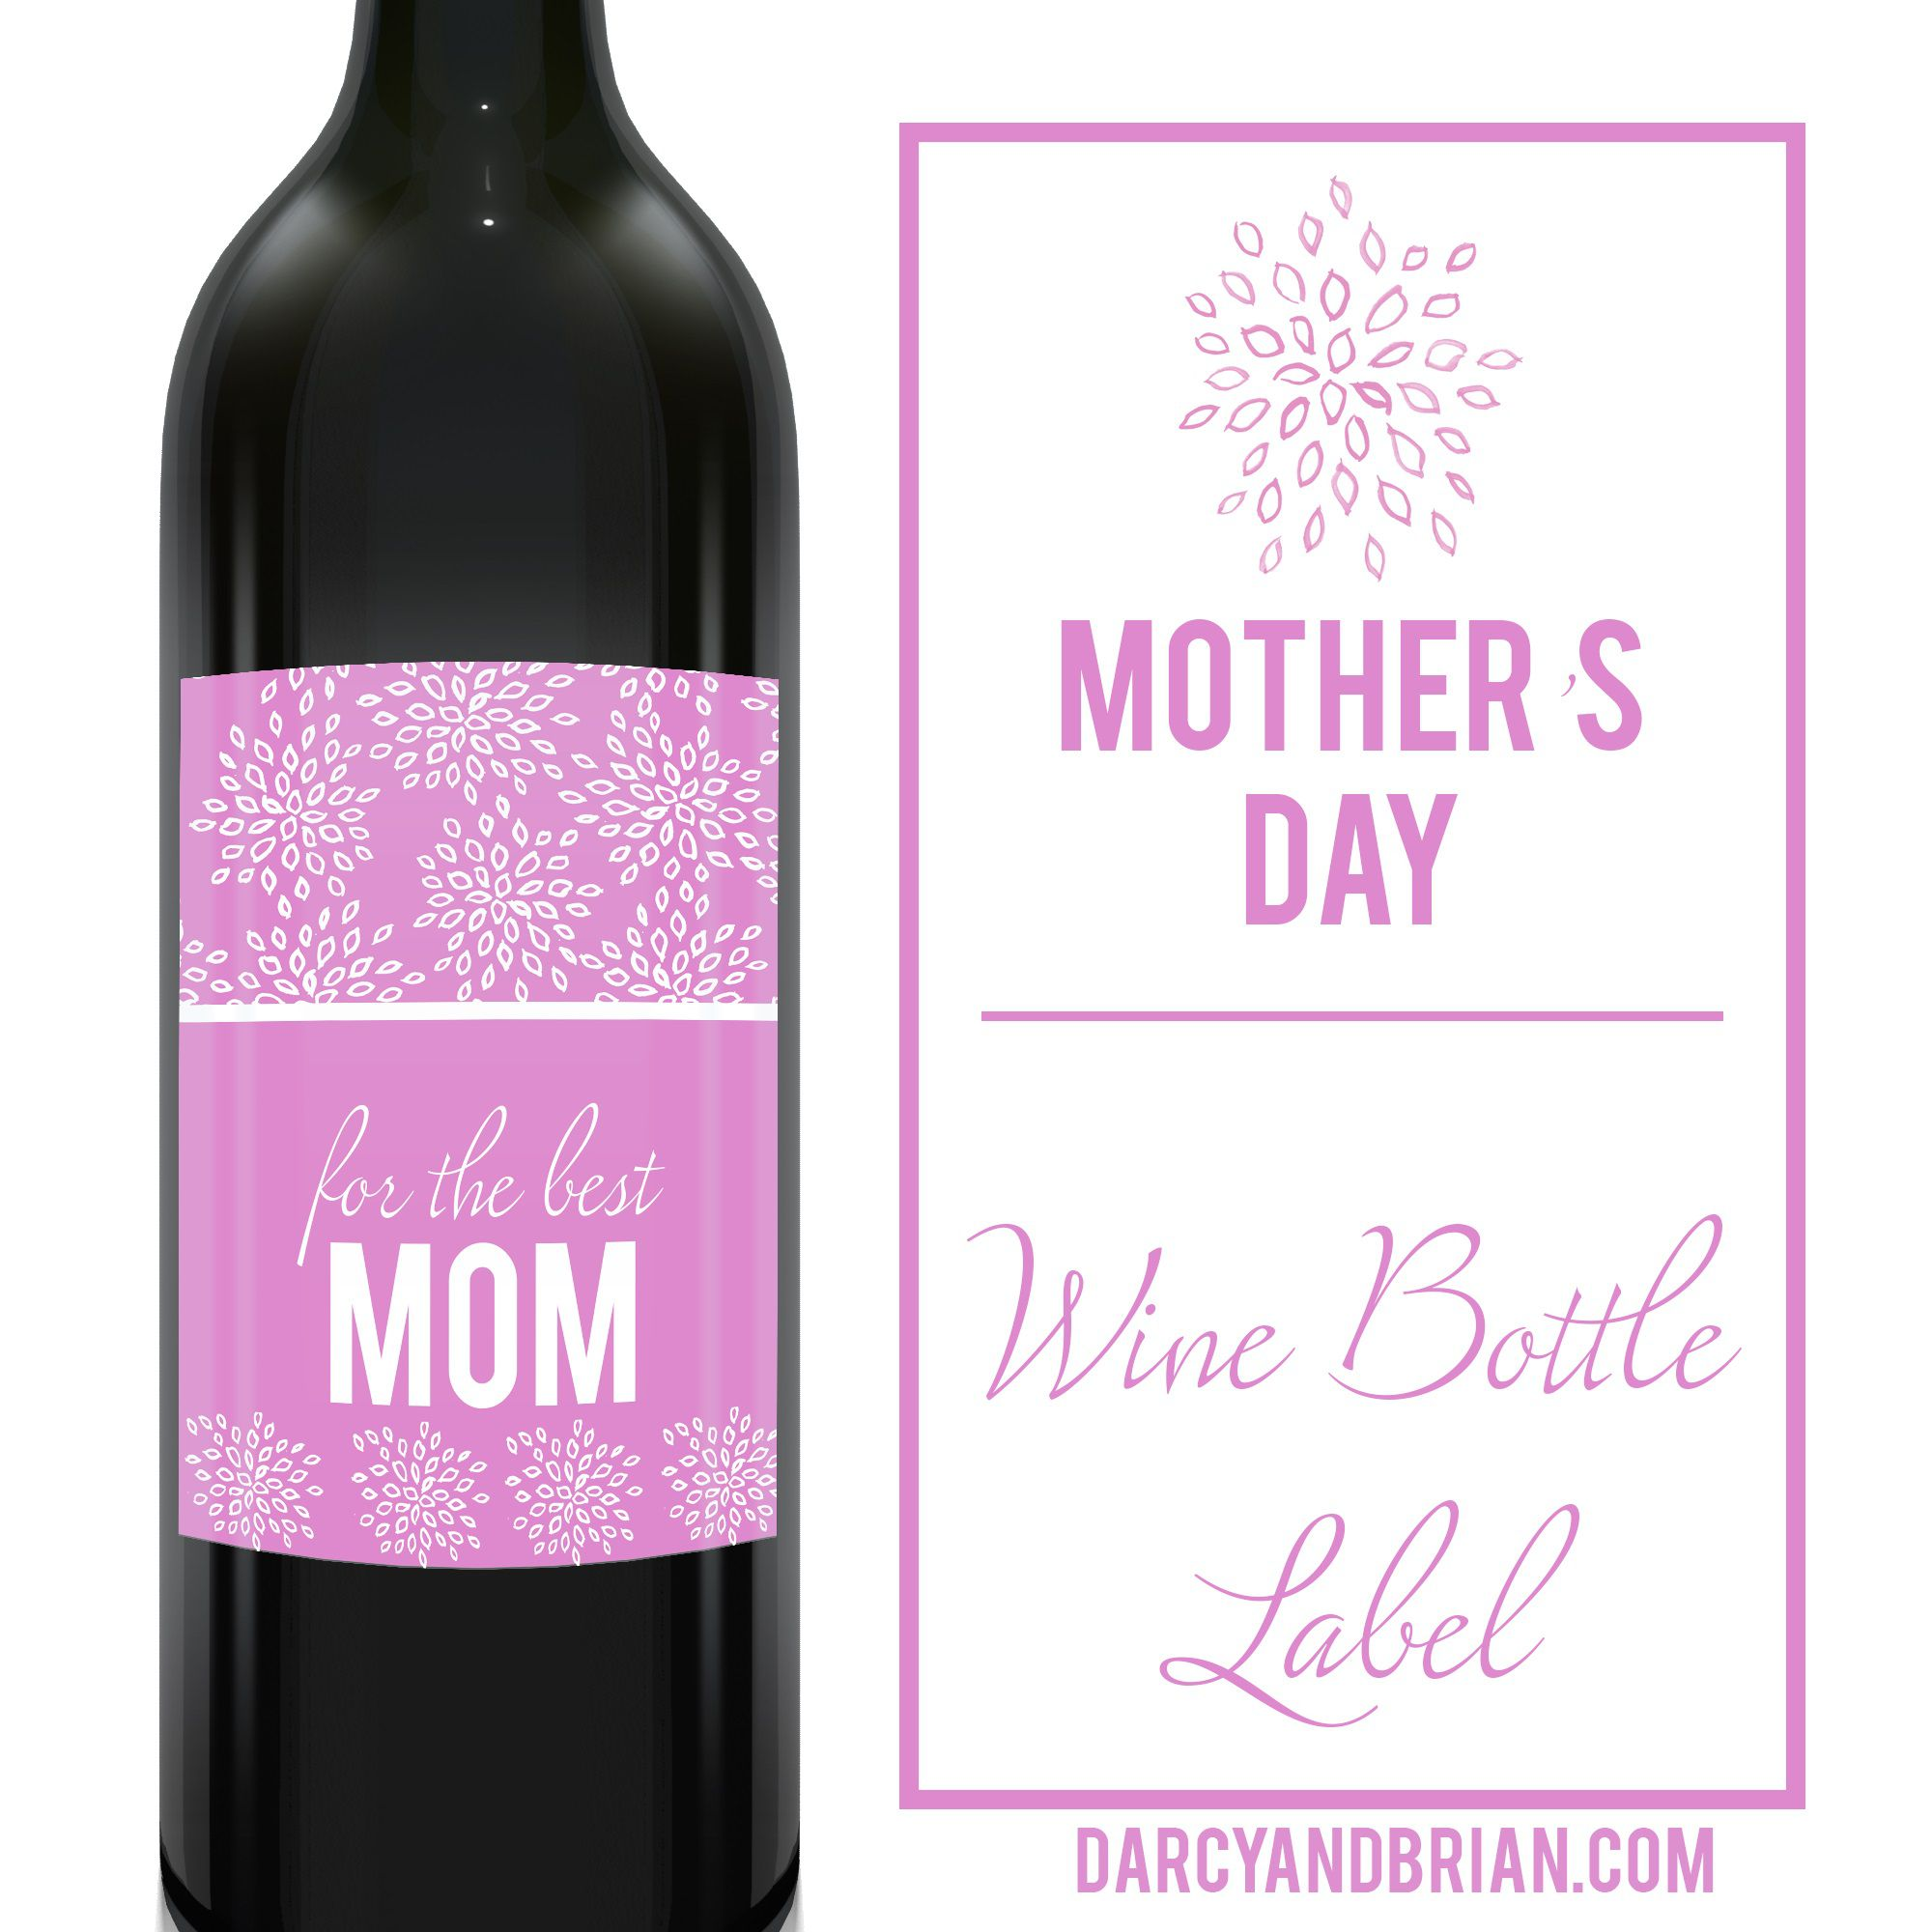 006 Awesome Free Wine Label Template Image  Online Custom Downloadable BottleFull